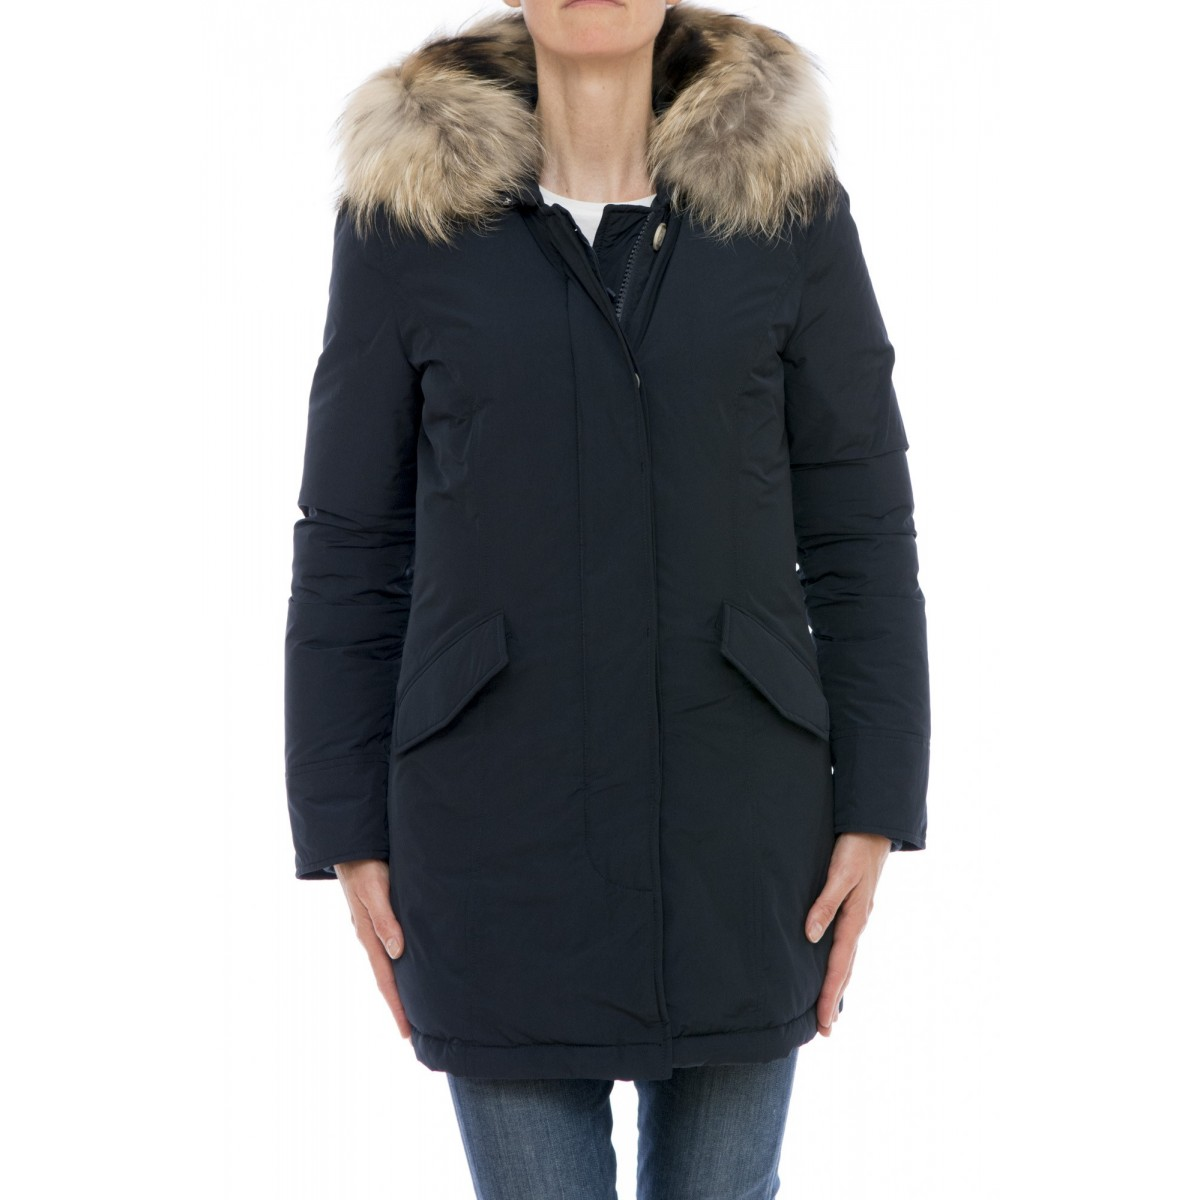 Piumino Woolrich - Ww cps2131 sm20 luxury arctic parka